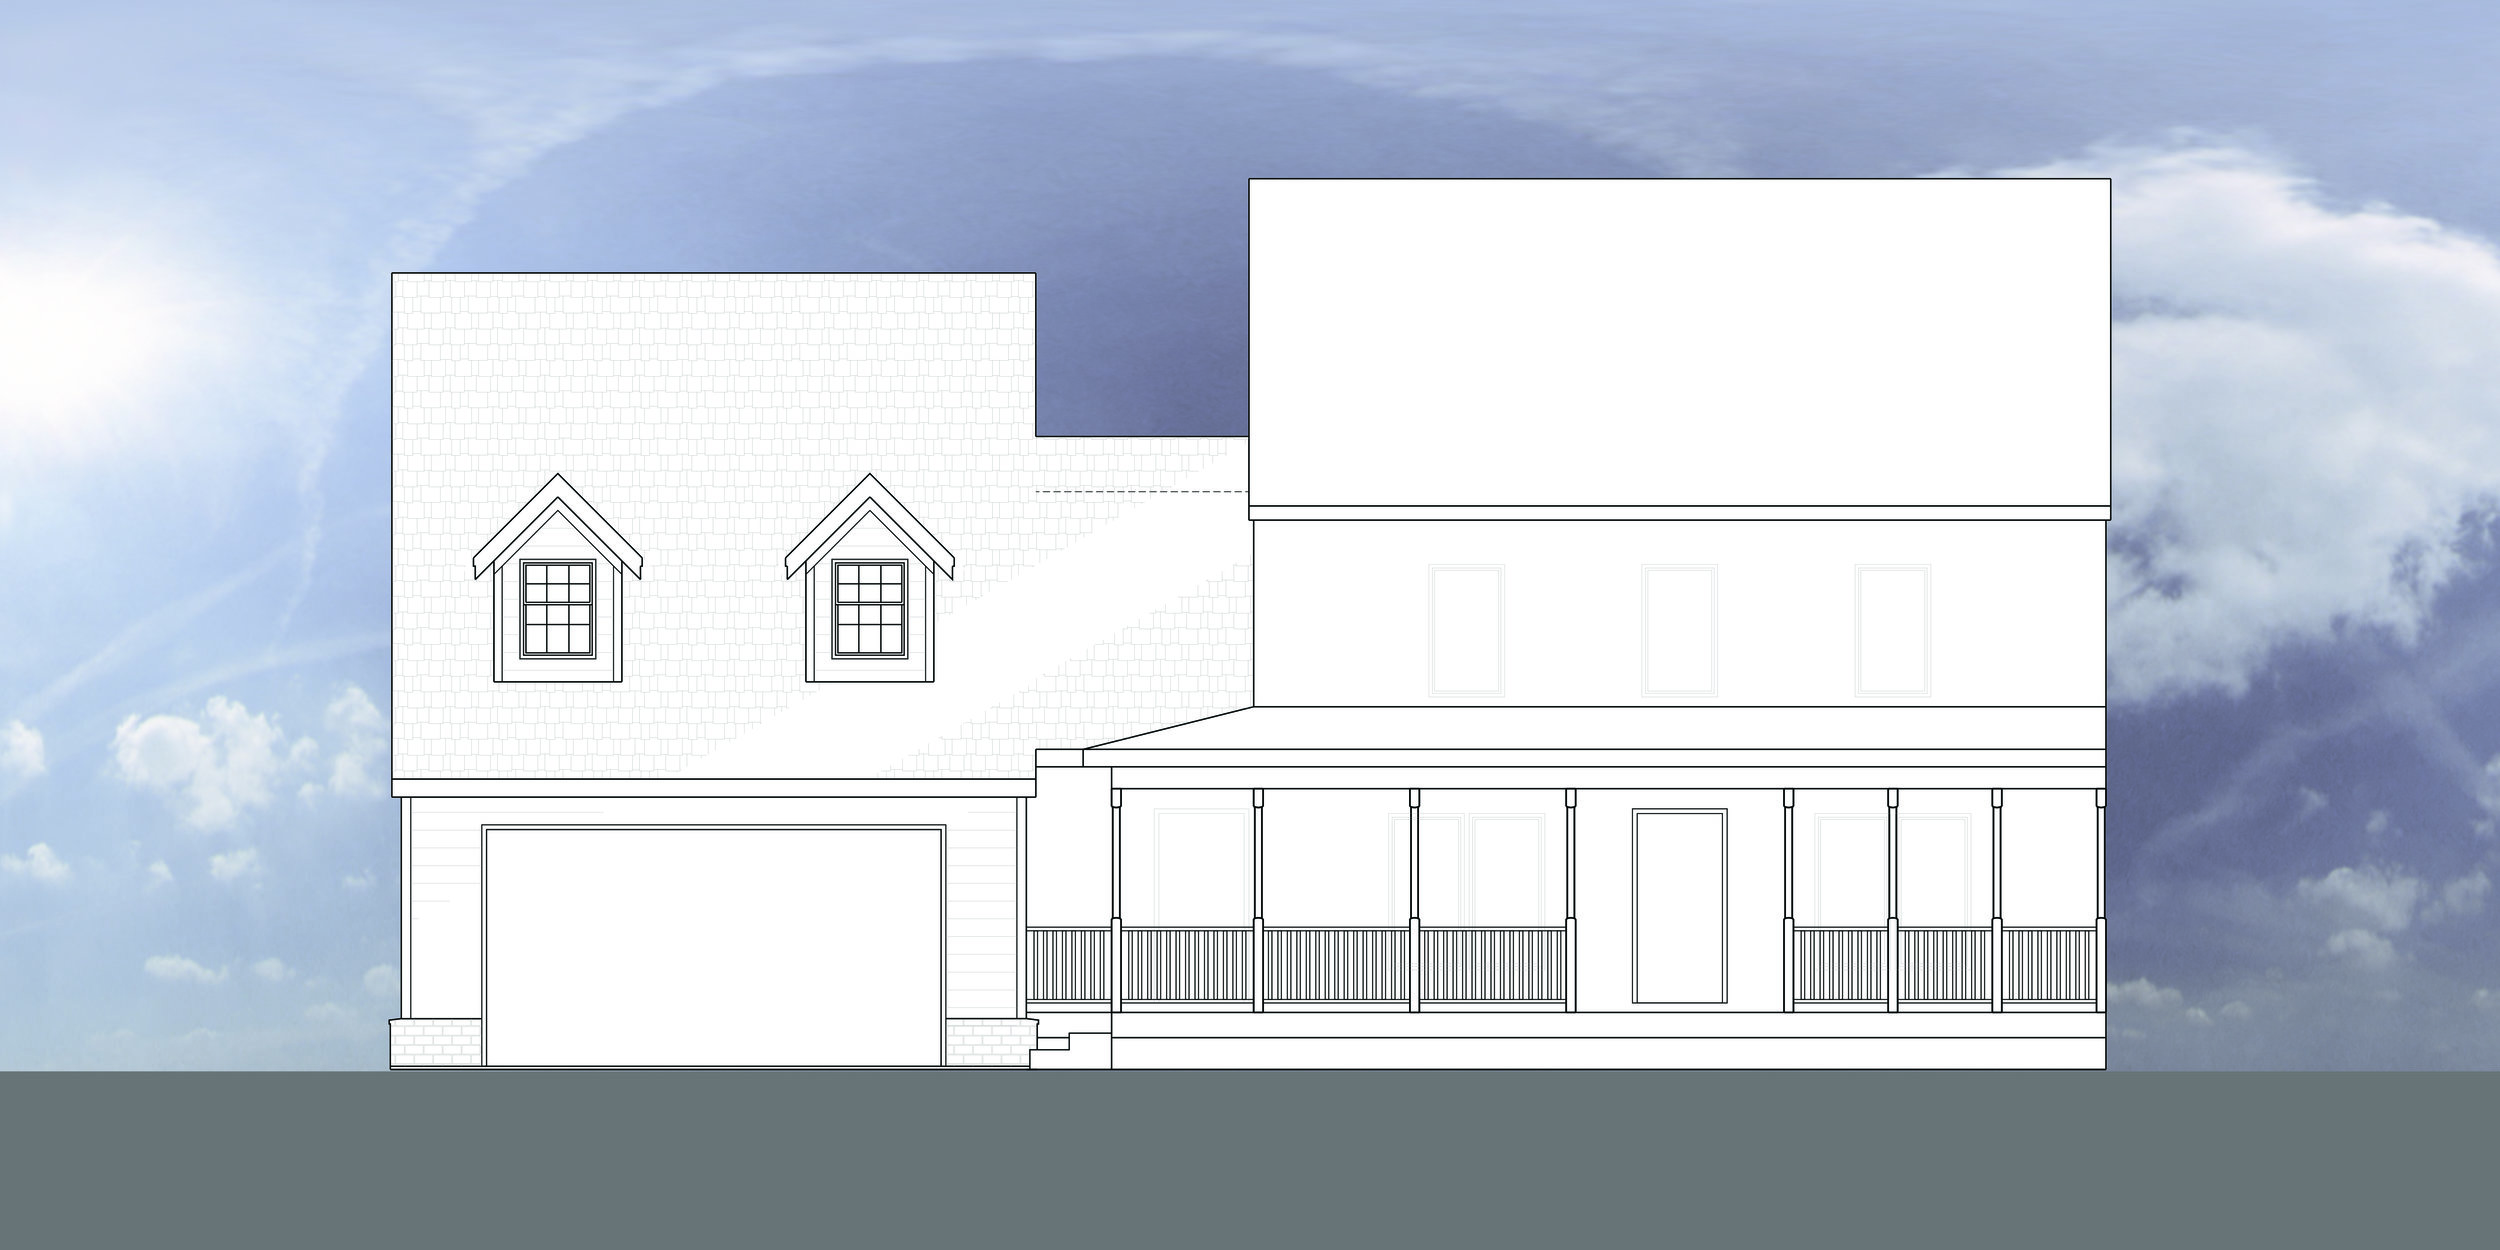 Front exterior elevation showing existing and new addition